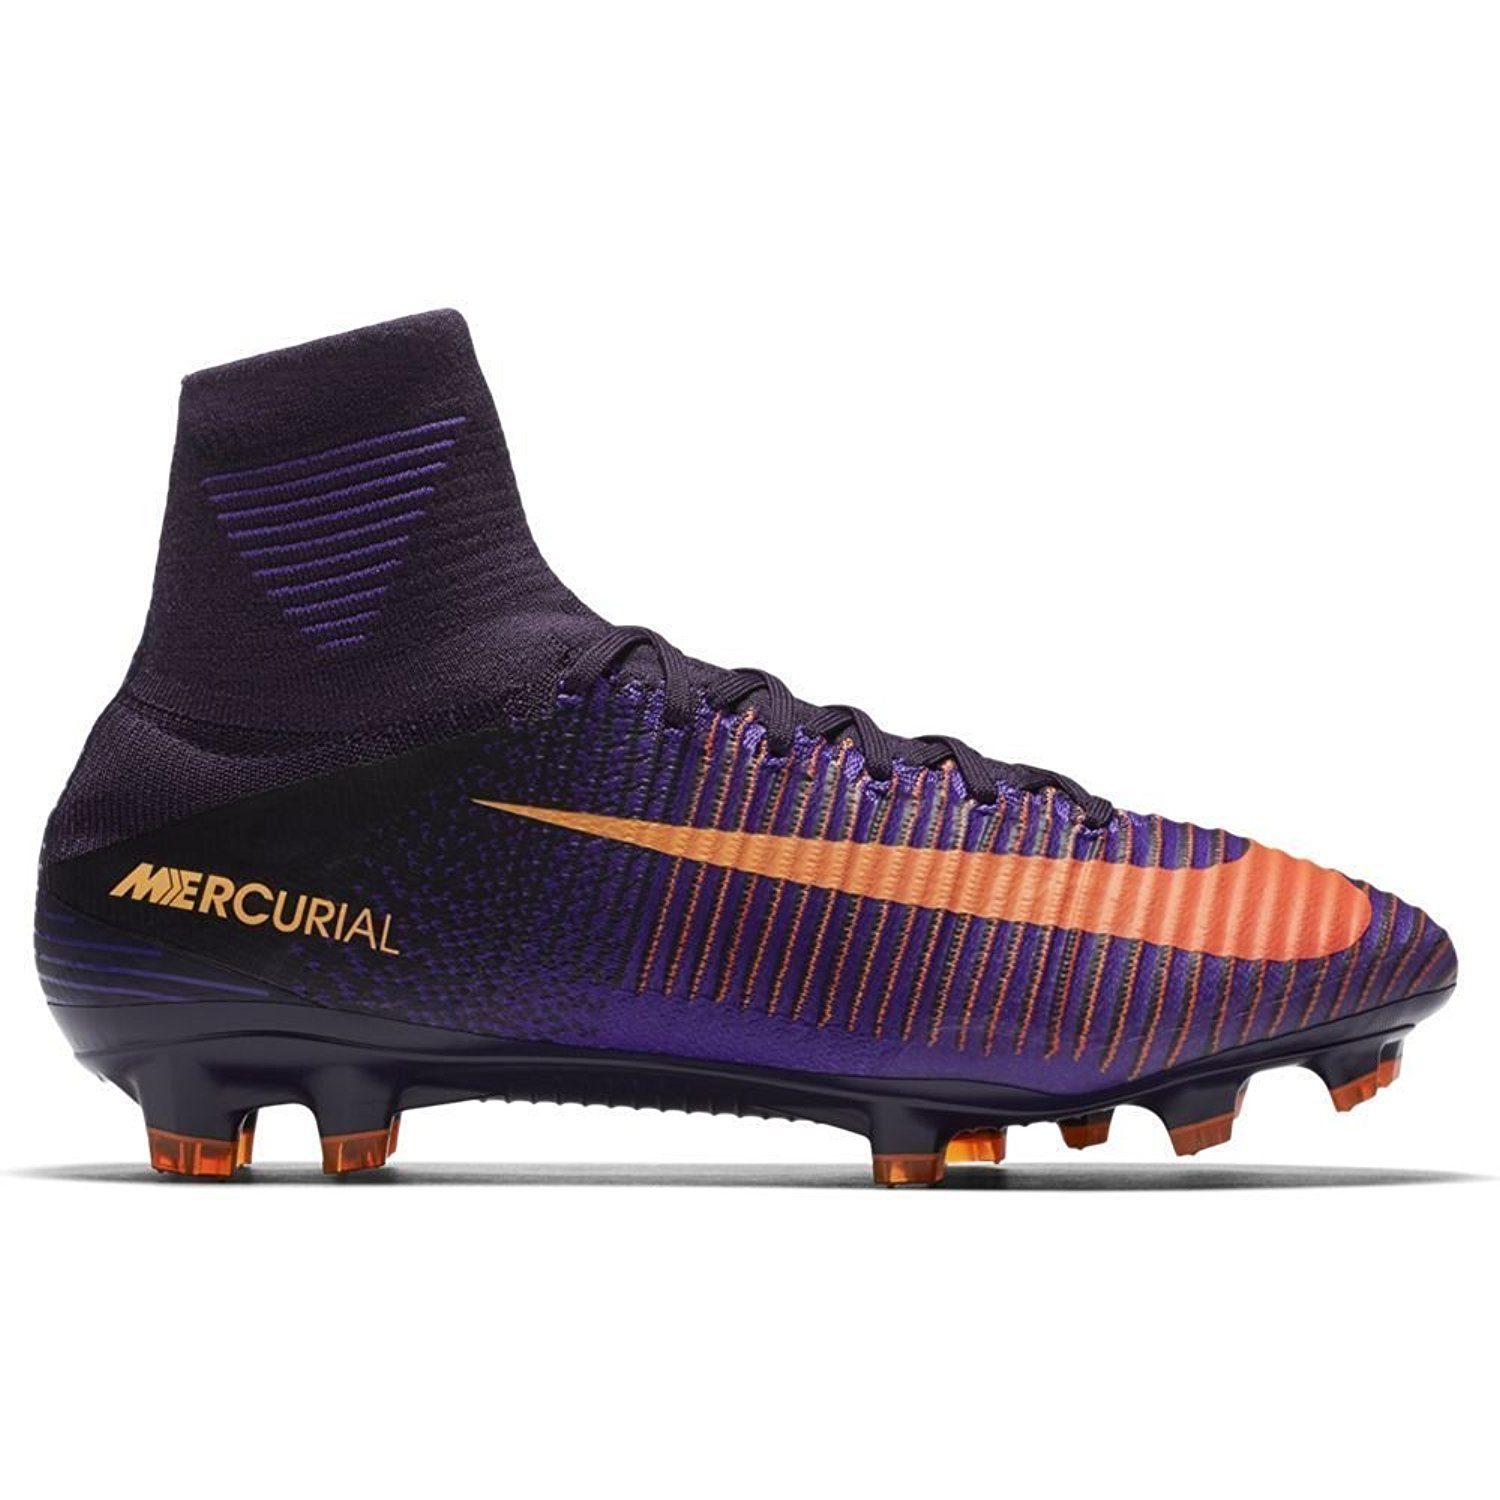 5e60ecc6b Get Quotations · Nike Men s Mercurial Superfly FG Soccer Cleat (Purple  Dynasty)